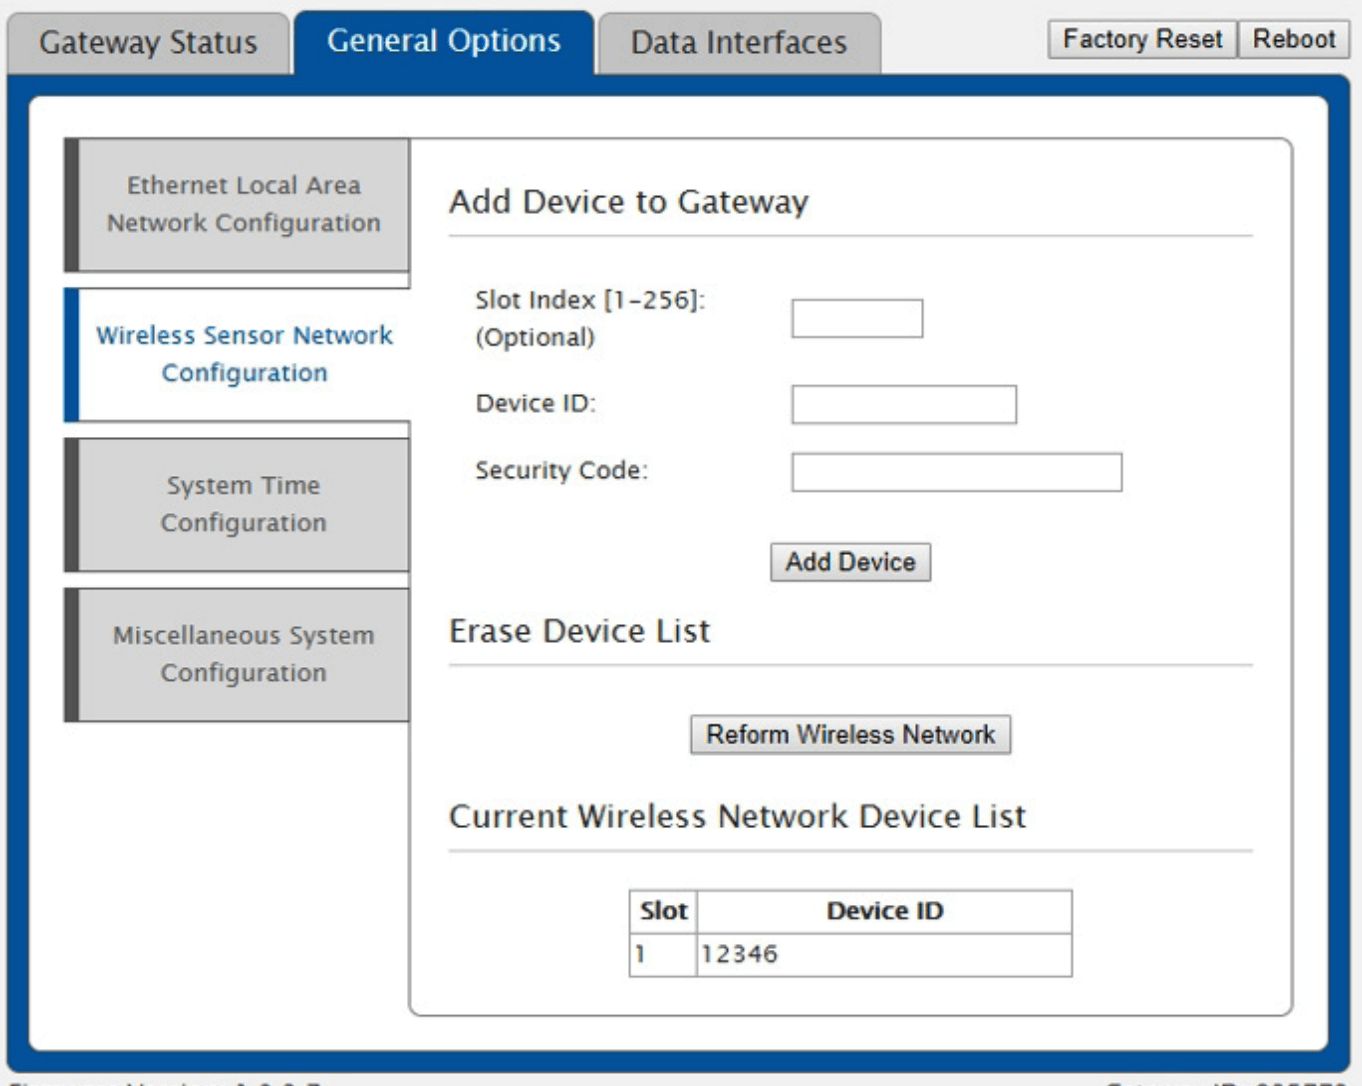 Wireless Sensor Network Configuration